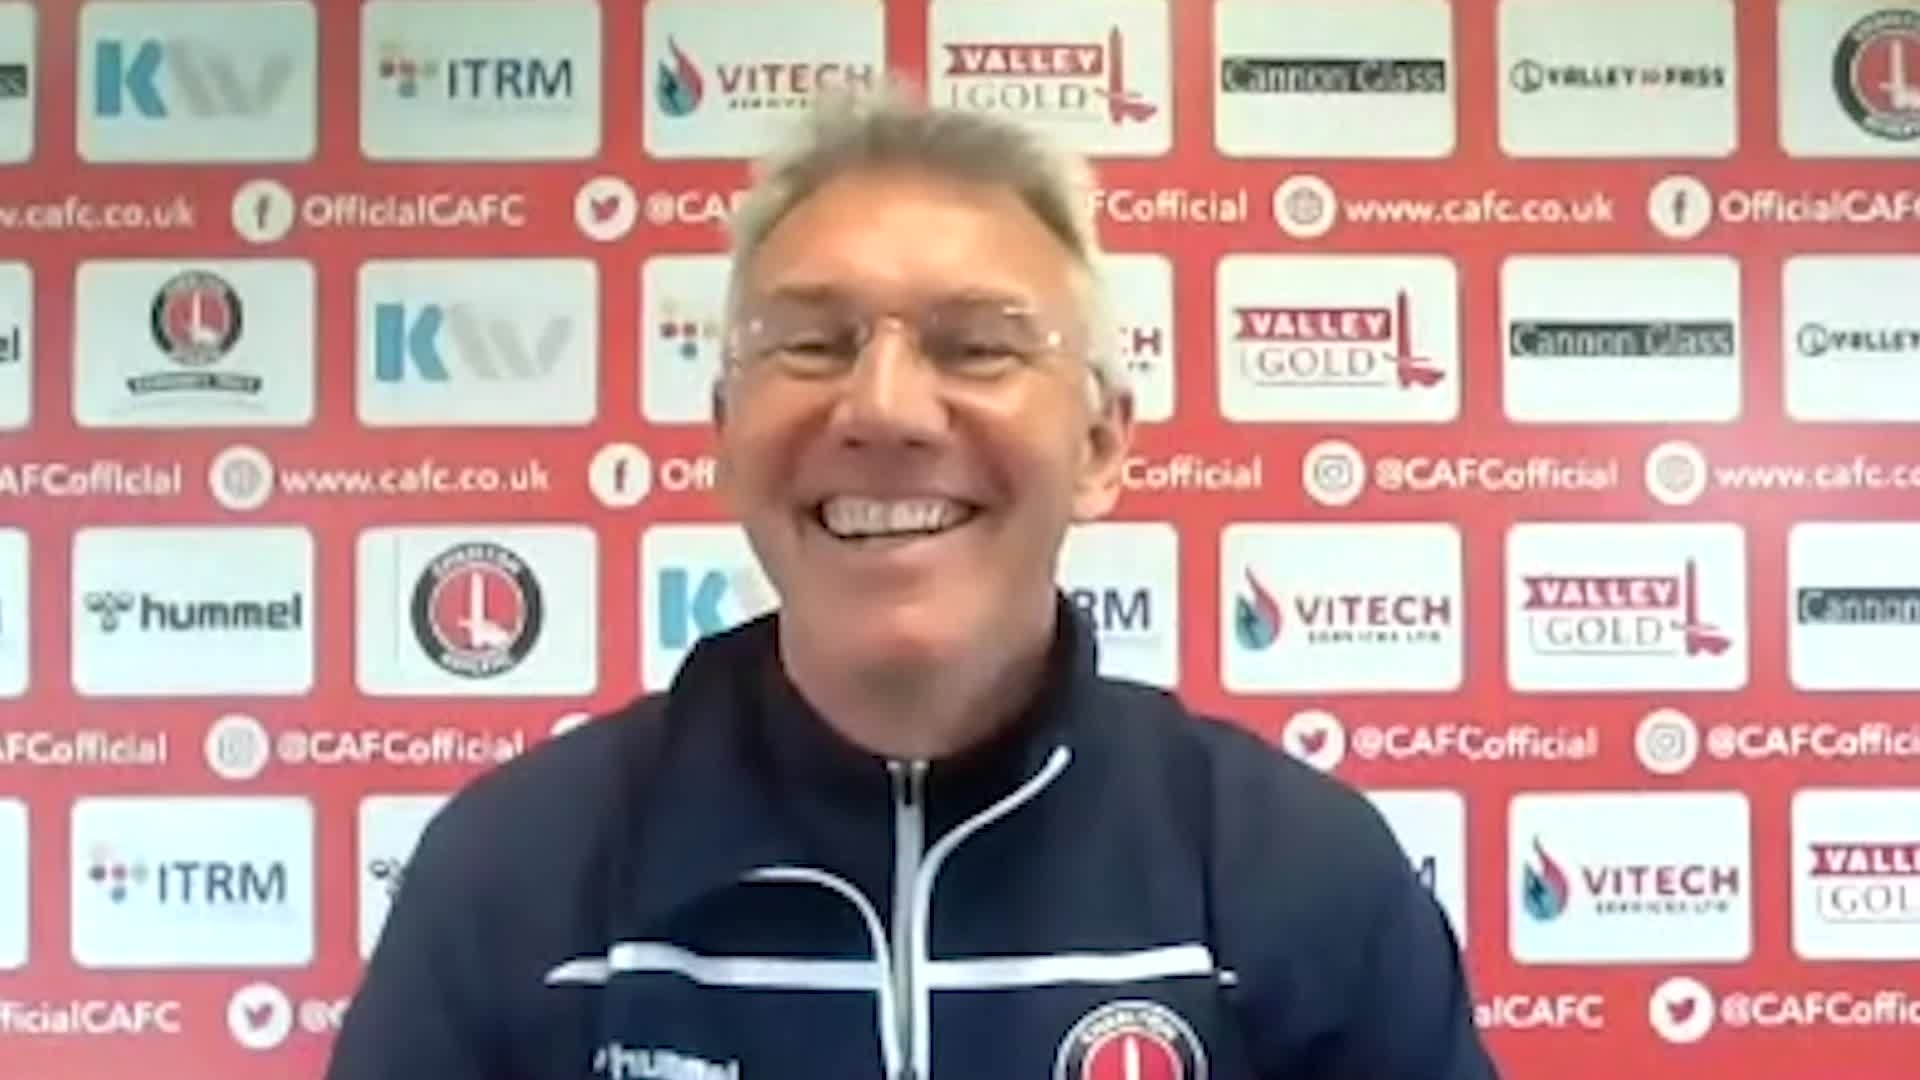 PRE-MATCH | Adkins' pre-Ipswich press conference (April 2021)